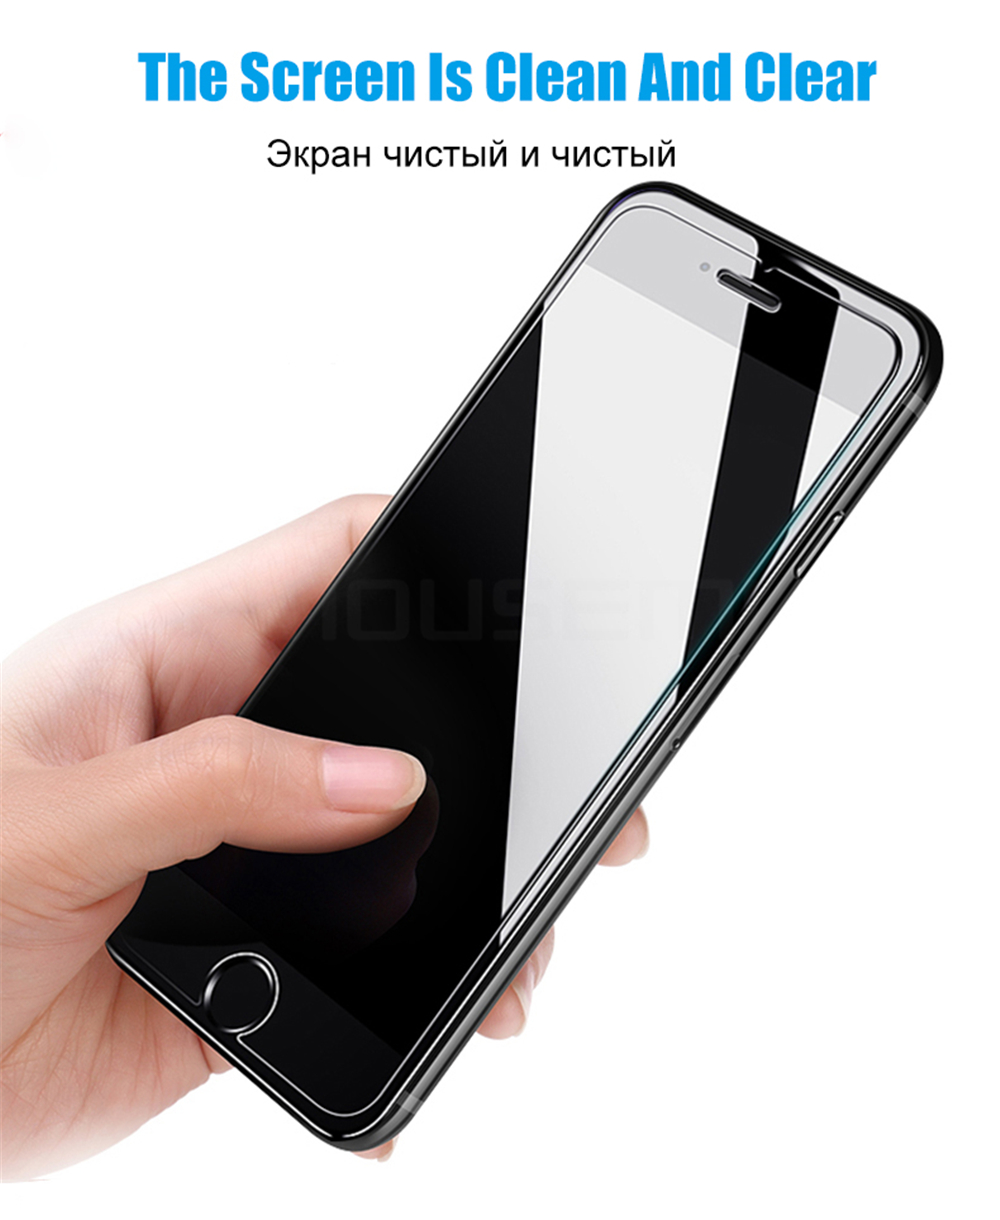 MOUSEMI Screen Protector For iPhone 6 6s Glass Tempered Scratch Proof 9H 2.5D For iPhone 6s 6 Plus Tempered Glass Protection (1)